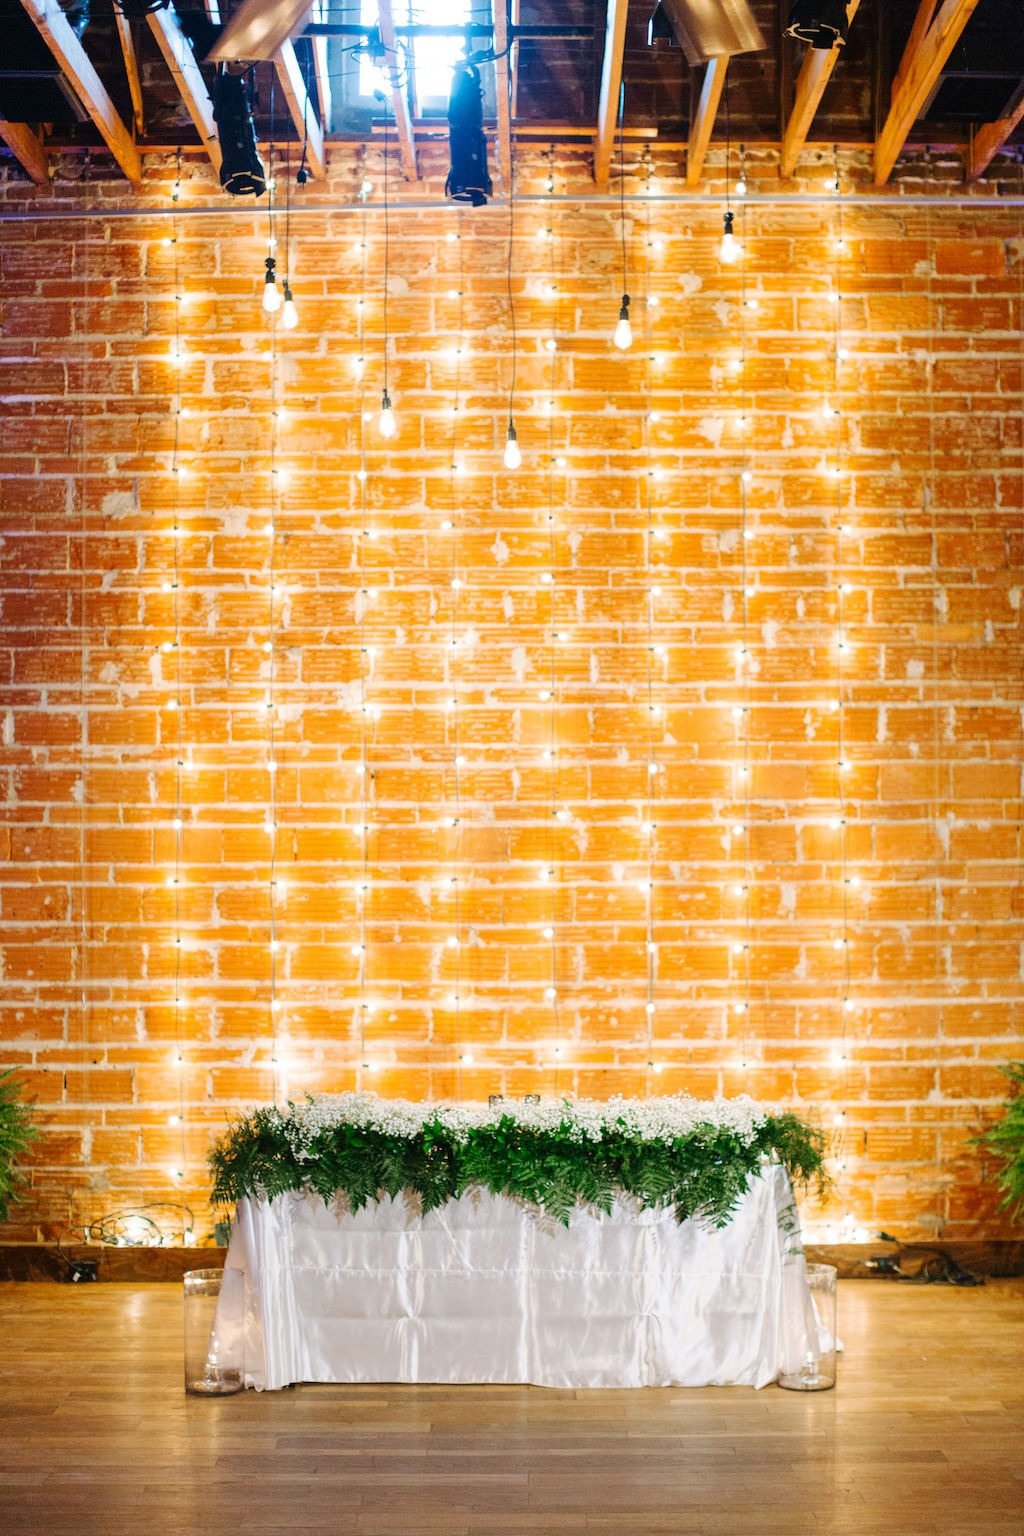 Modern, Romantic Reception and Florida Wedding Decor, Sweetheart Table, with Babies Breath Garland Florals, String light Backdrop on Exposed Brick Wall | | Tampa Bay Premier Wedding Venue NOVA 535 in Downtown St. Pete